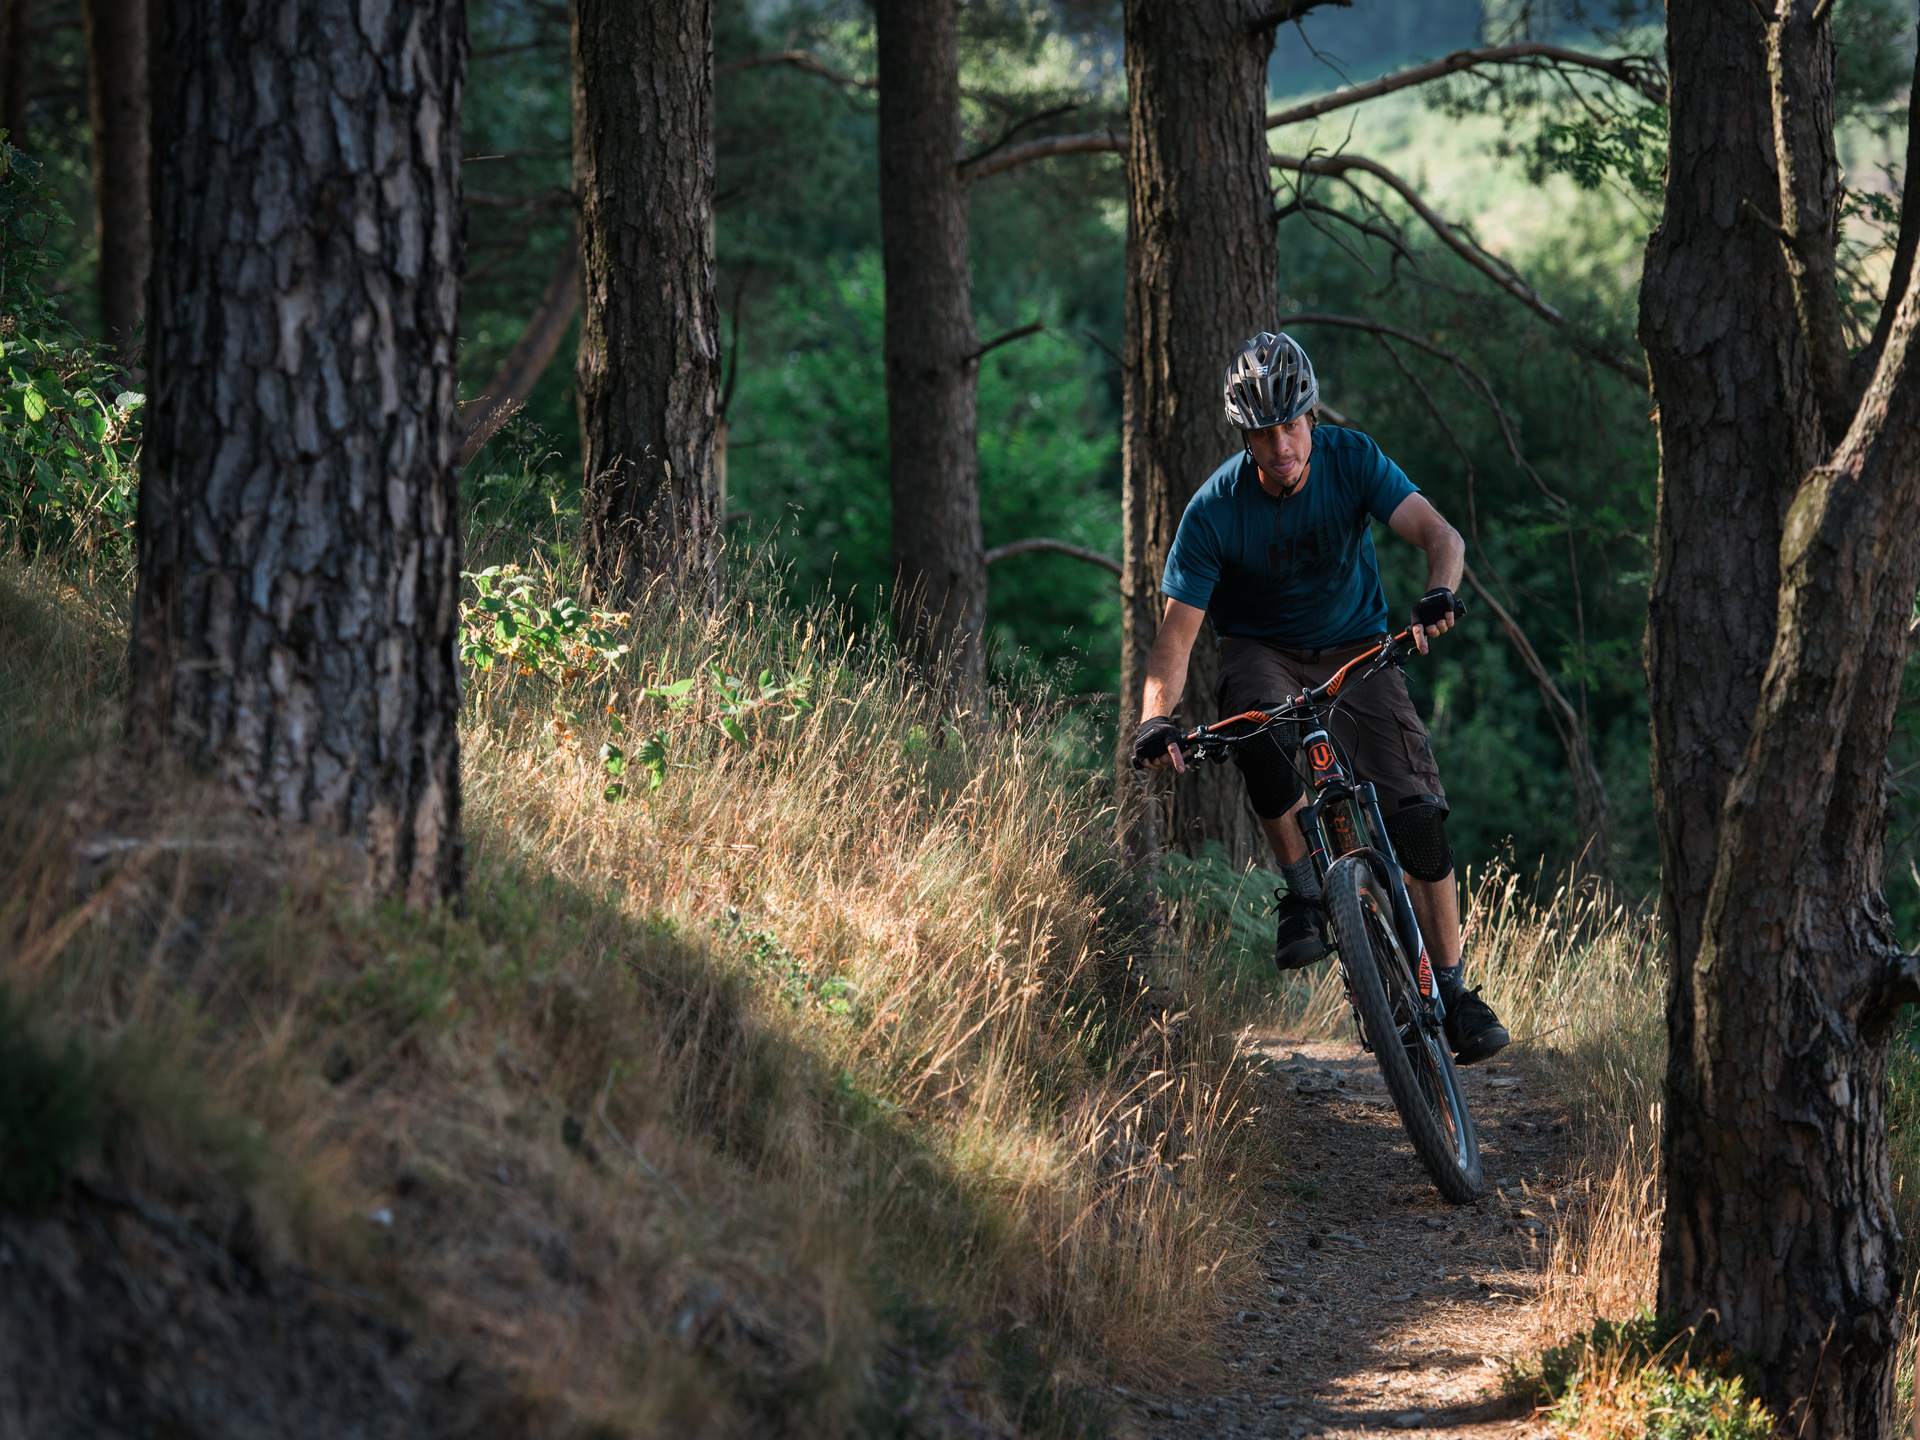 Darren Fawr Mountain Biking Trails